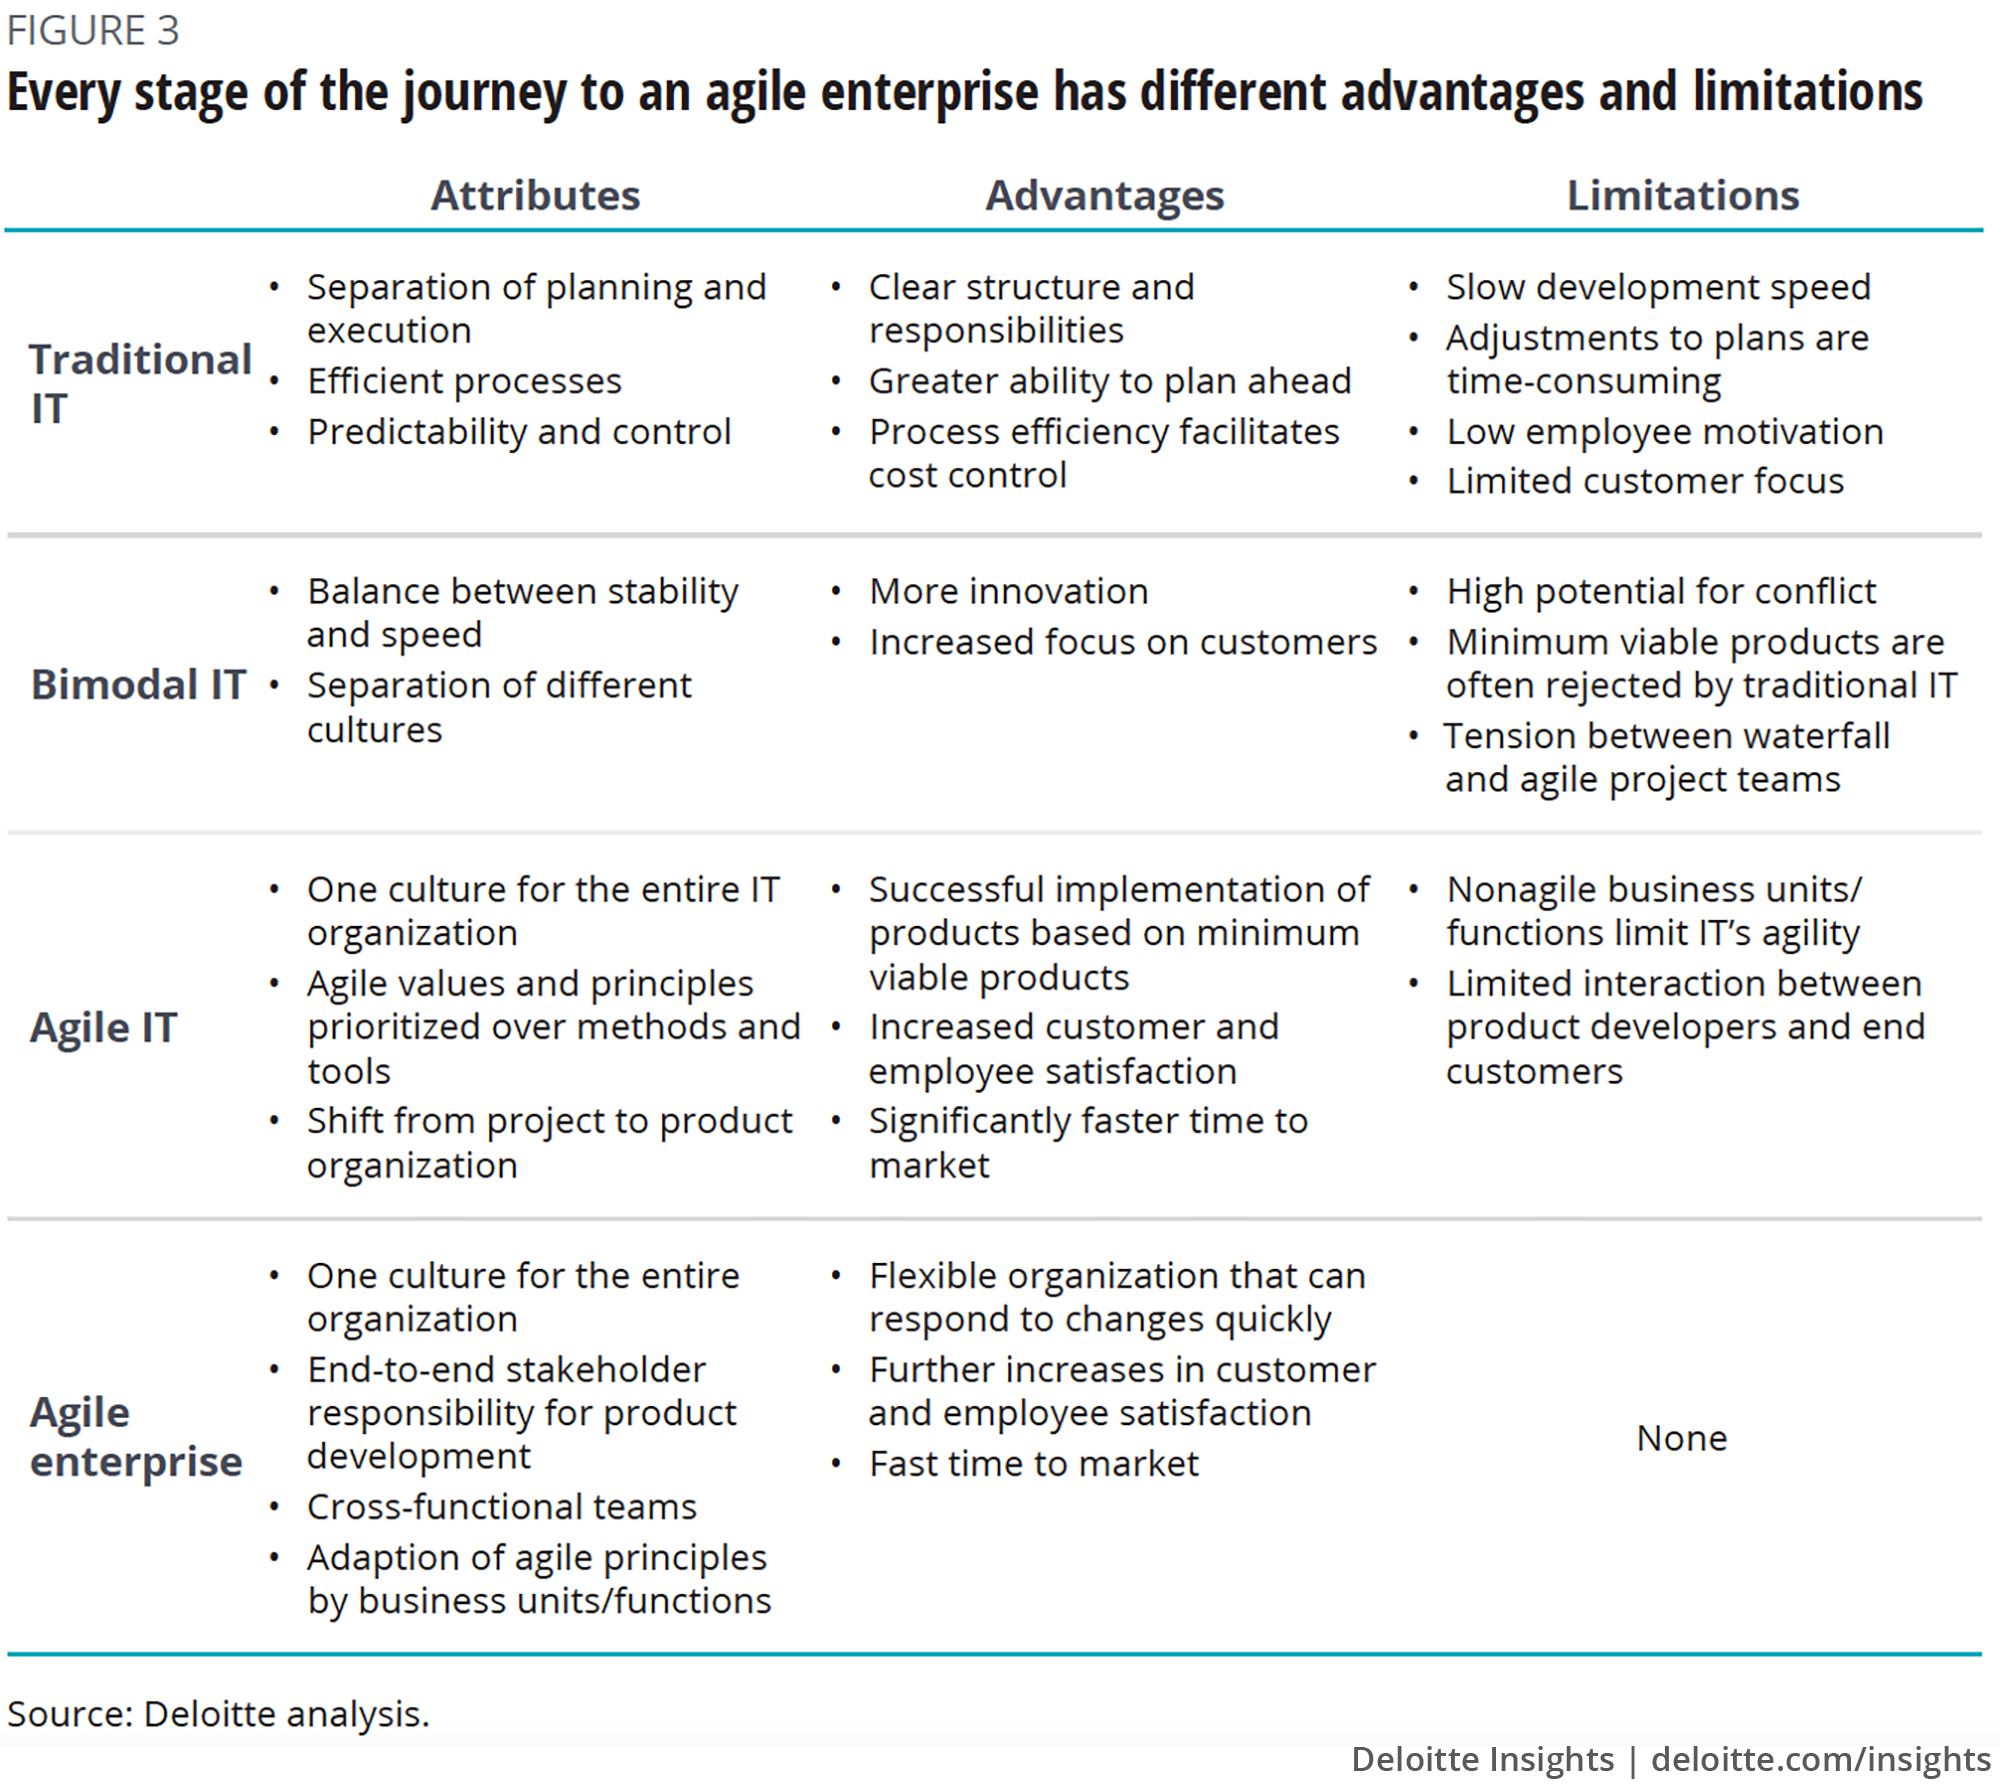 Every stage of the journey to an agile enterprise has different advantages and limitations